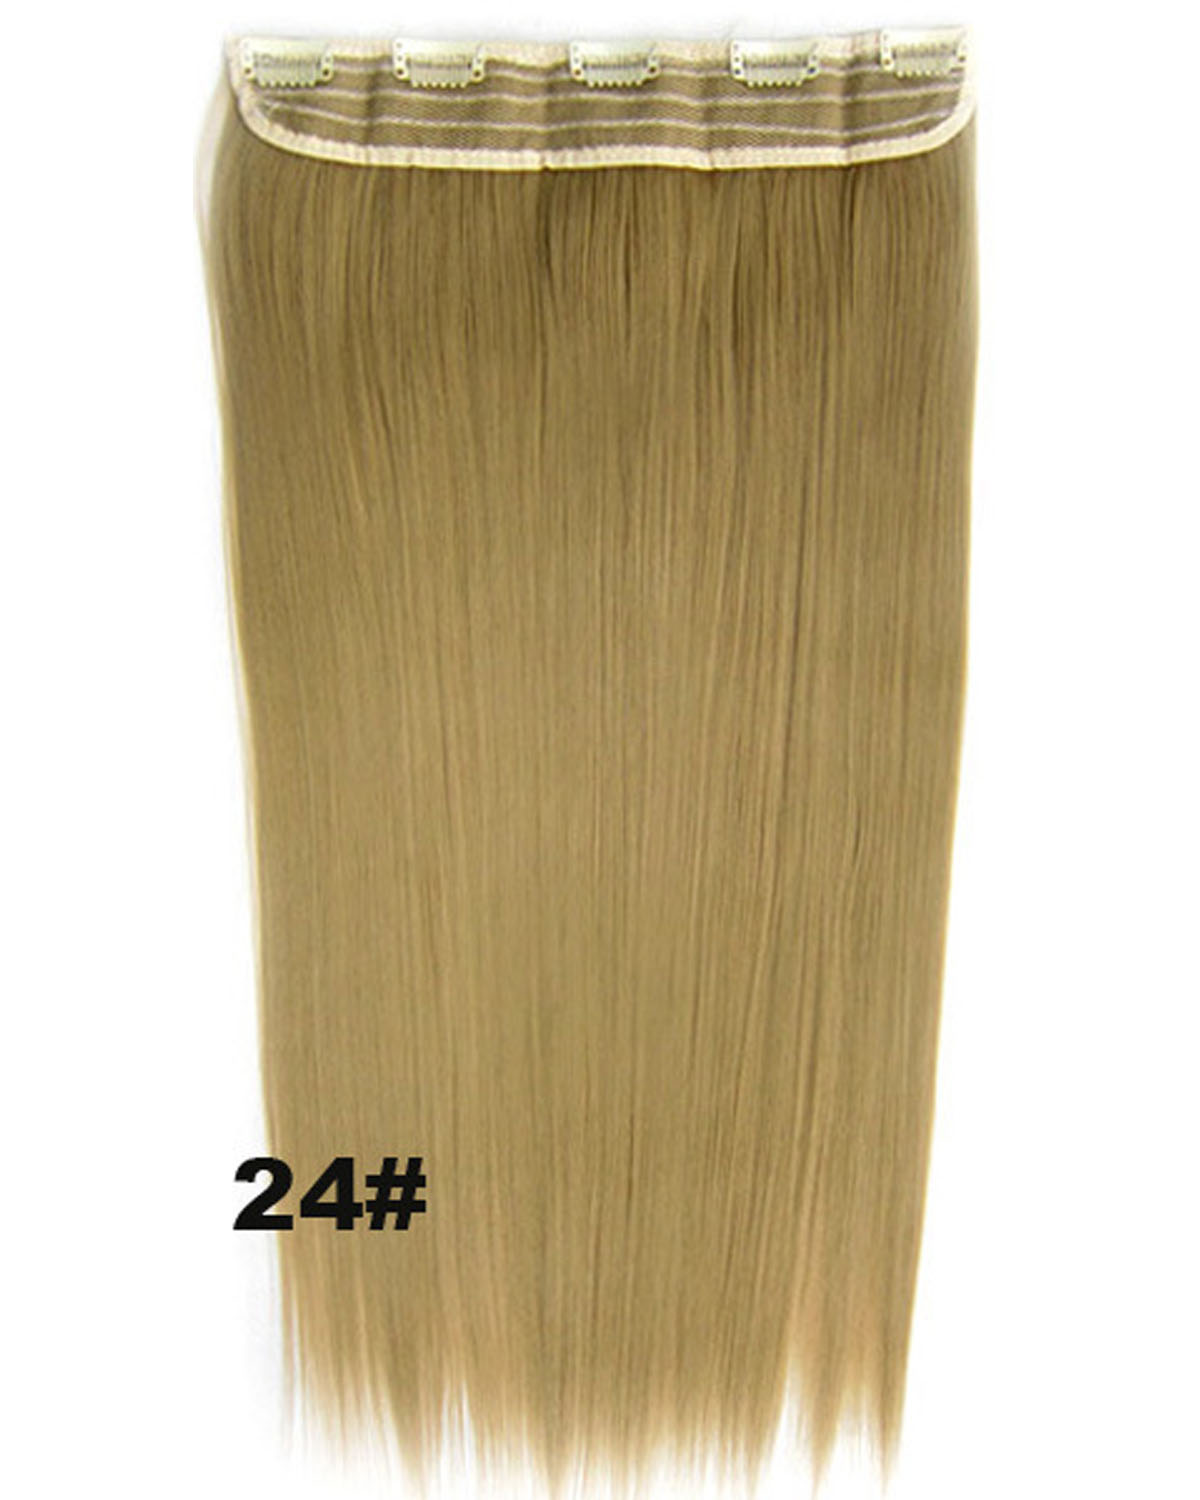 24 Inch Female Attractive Long and Straight Hot-Sale One Piece 5 Clips Clip in Synthetic Hair Extension 24#